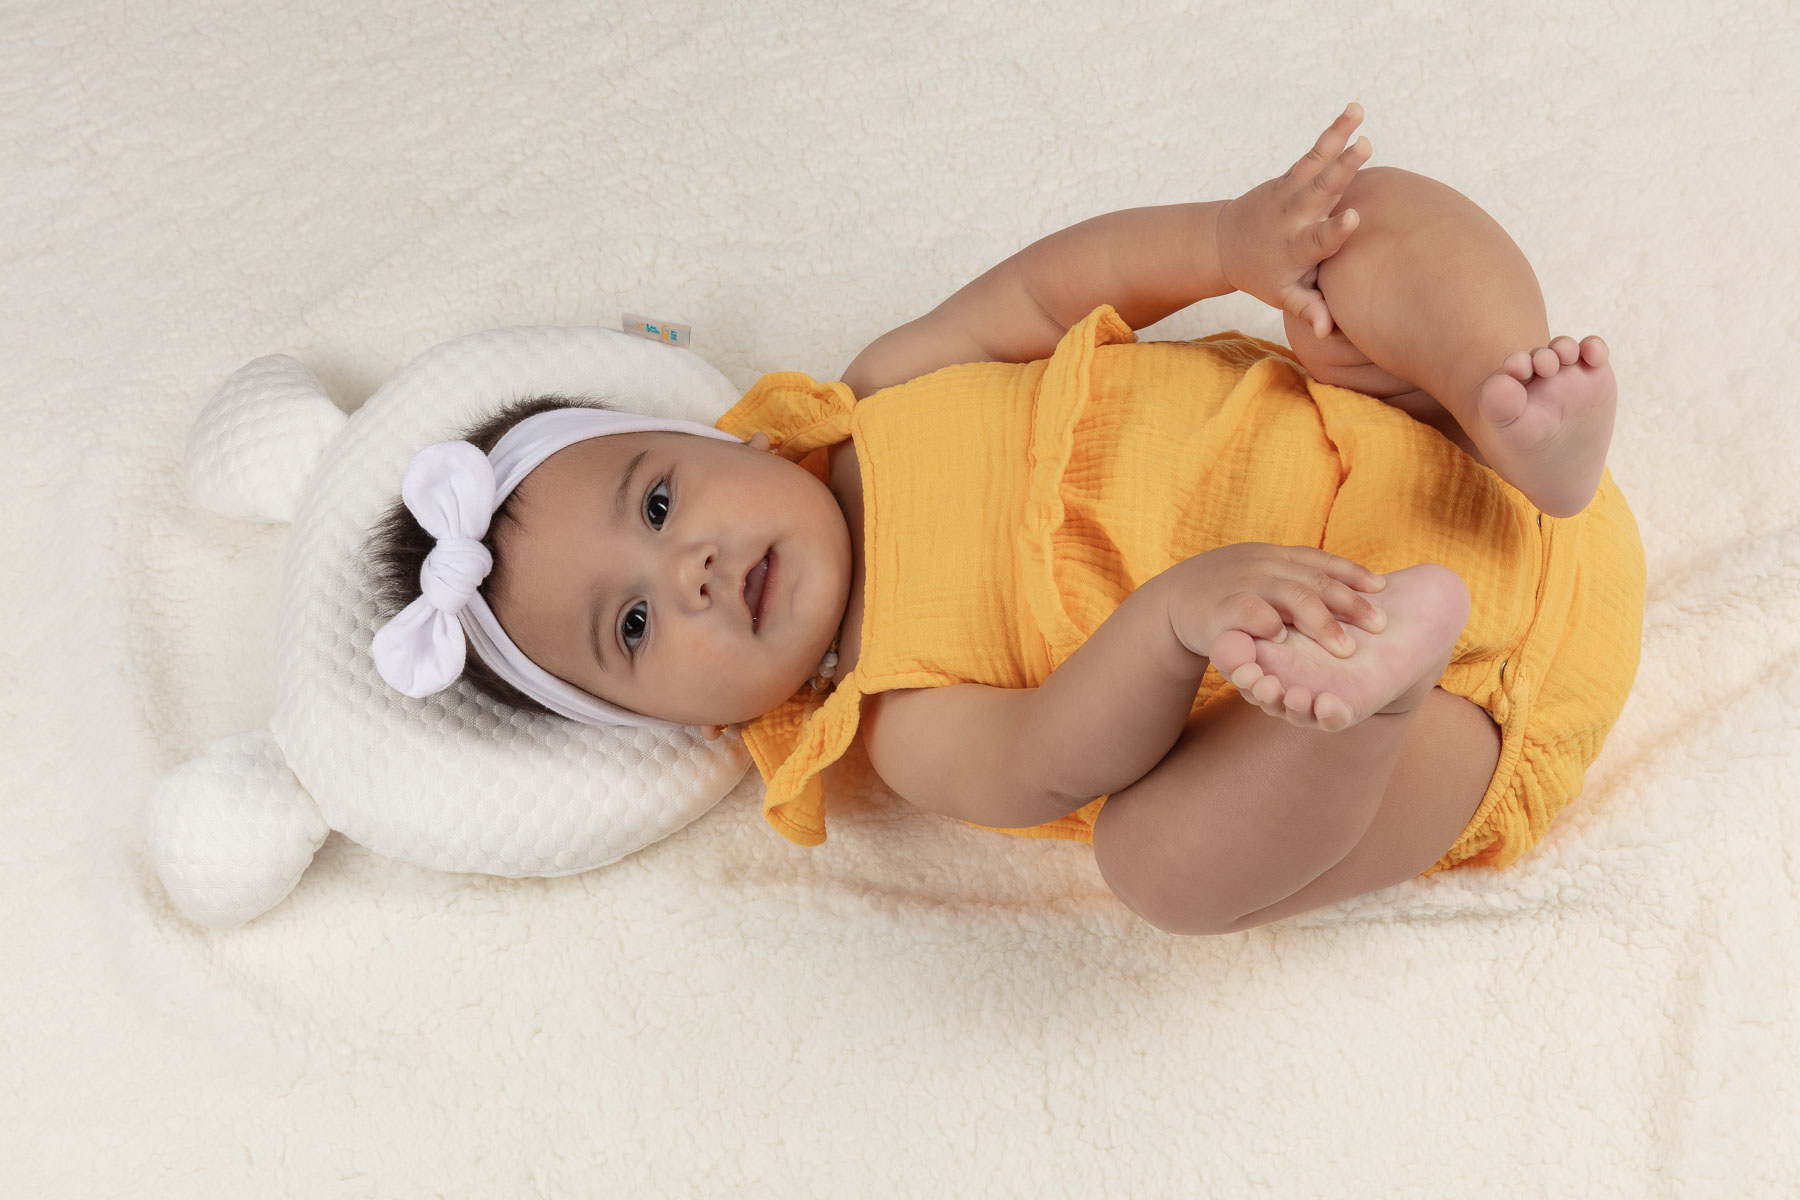 Baby Pillow with baby full body holding feet_- Advertising product photography for Amazon